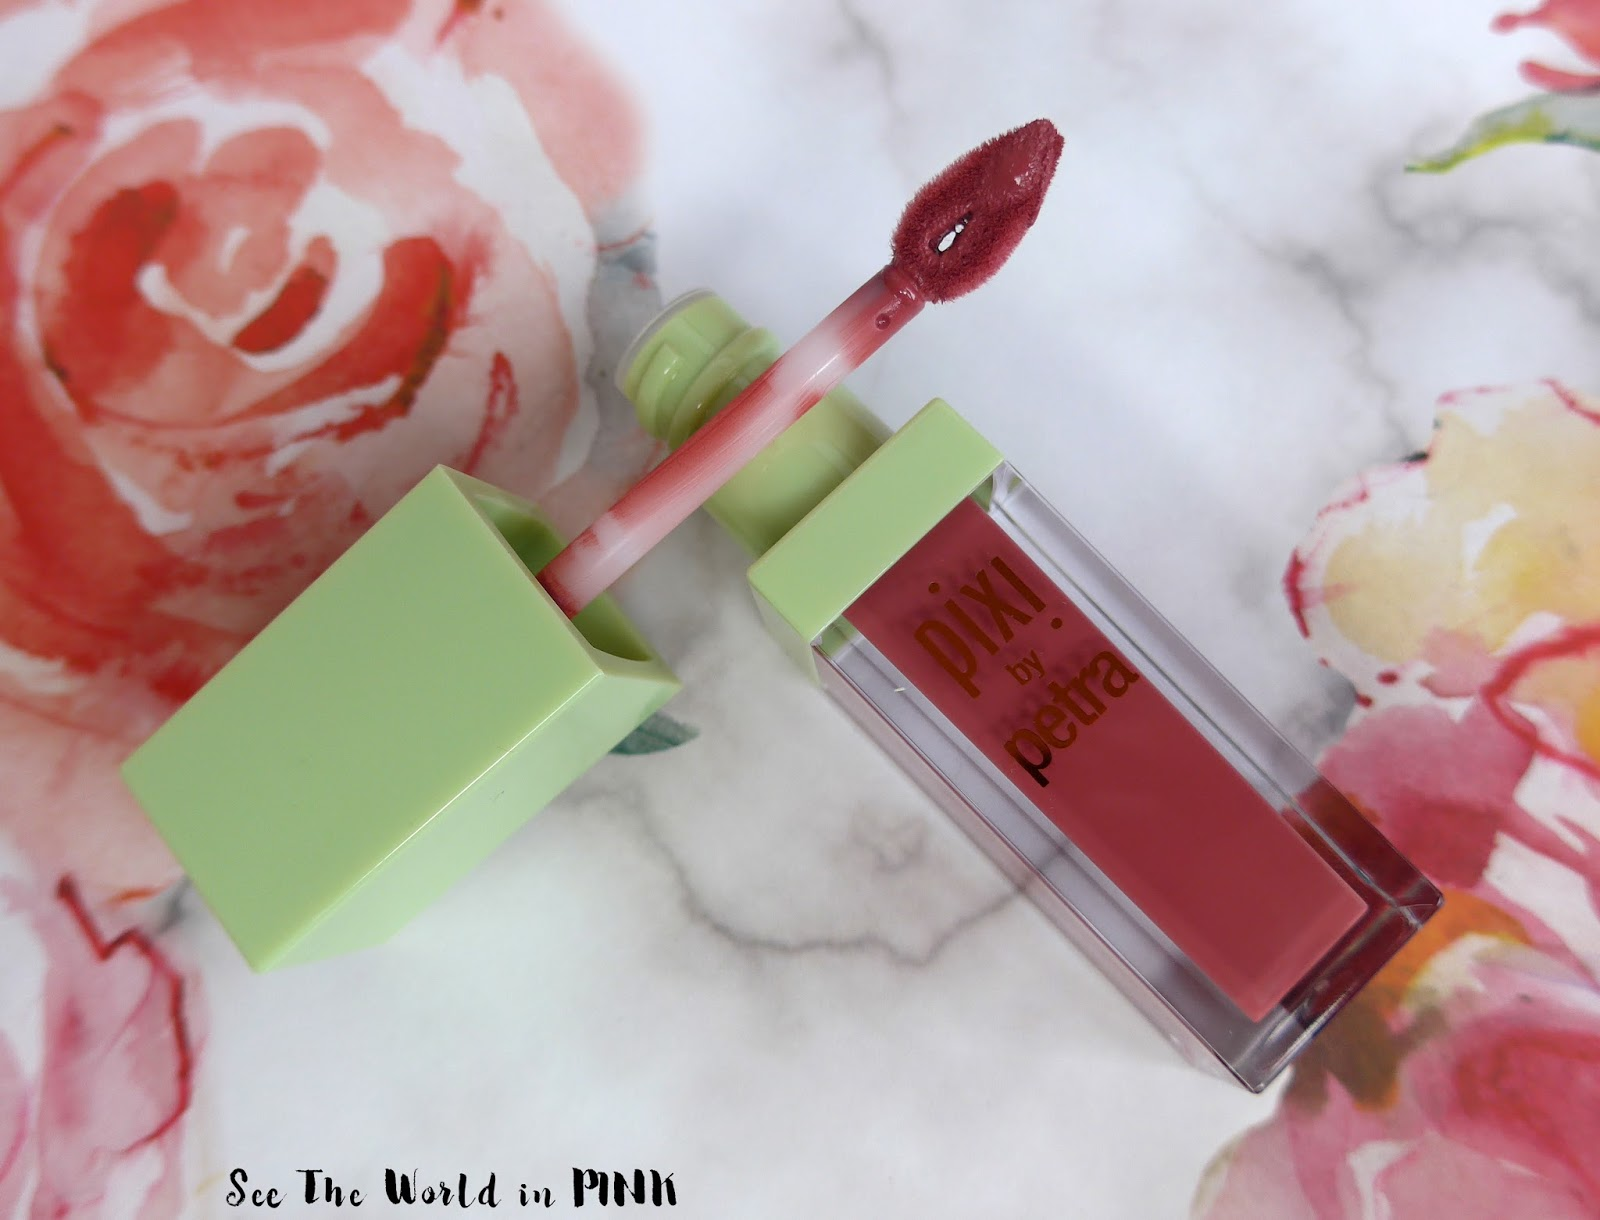 Pixi by Petra Beauty - Mattelast Liquid Lipstick in Really Rose Try-on and Review